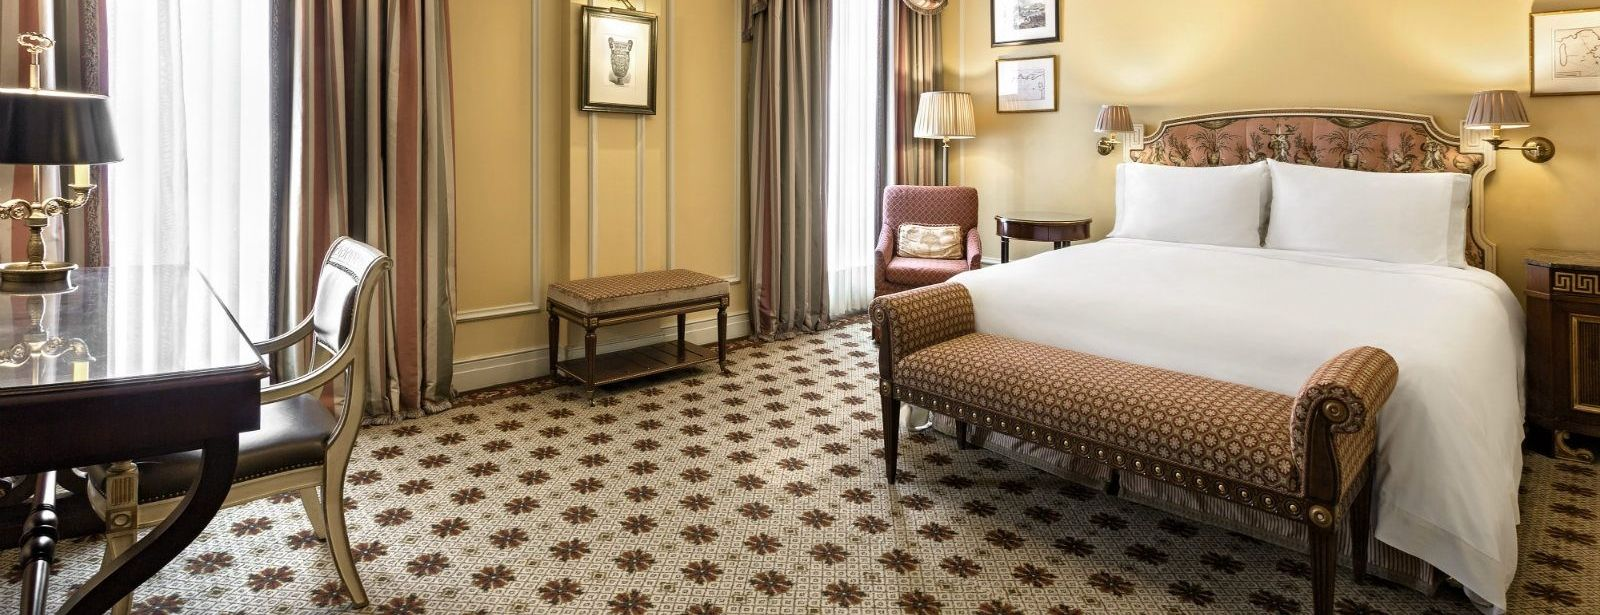 Pamper yourself and your loved one with an exclusive stay in one of Athens' most legendary hotels, the Hotel Grande Bretagne. (Picture via Hotel Grande Bretagne website)